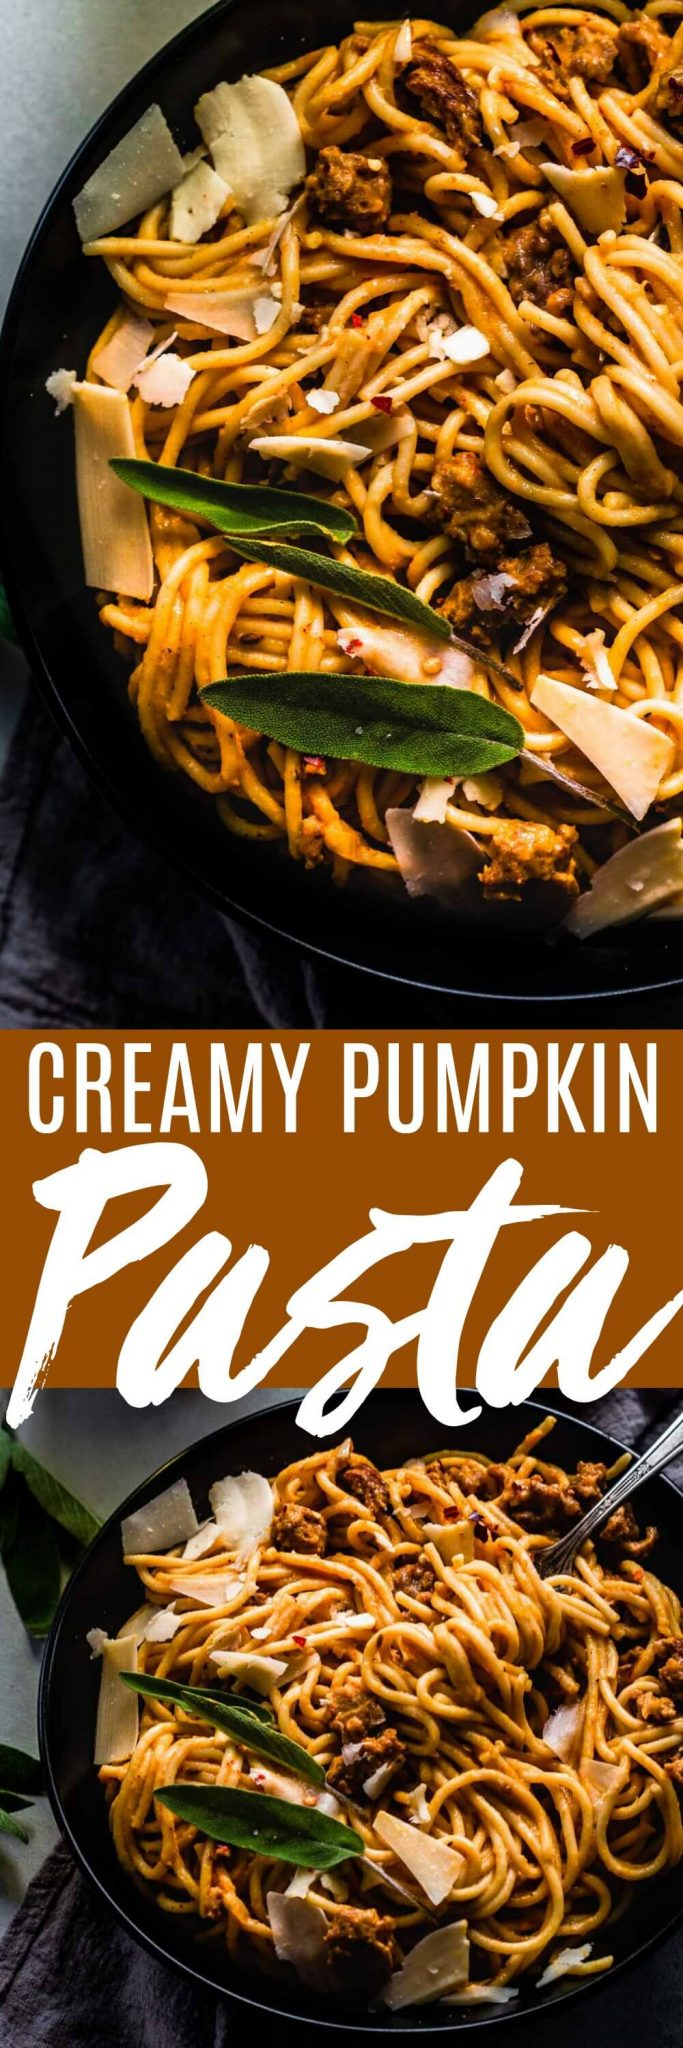 Creamy Pumpkin Pasta is so delicious and perfect for fall! Spaghetti is tossed with a creamy pumpkin sauce that's been flavored with sausage & sage for a delicious dinner that's ready in under 30-minutes. #pumpkinpasta #pasta #30minutemeal #easydinner